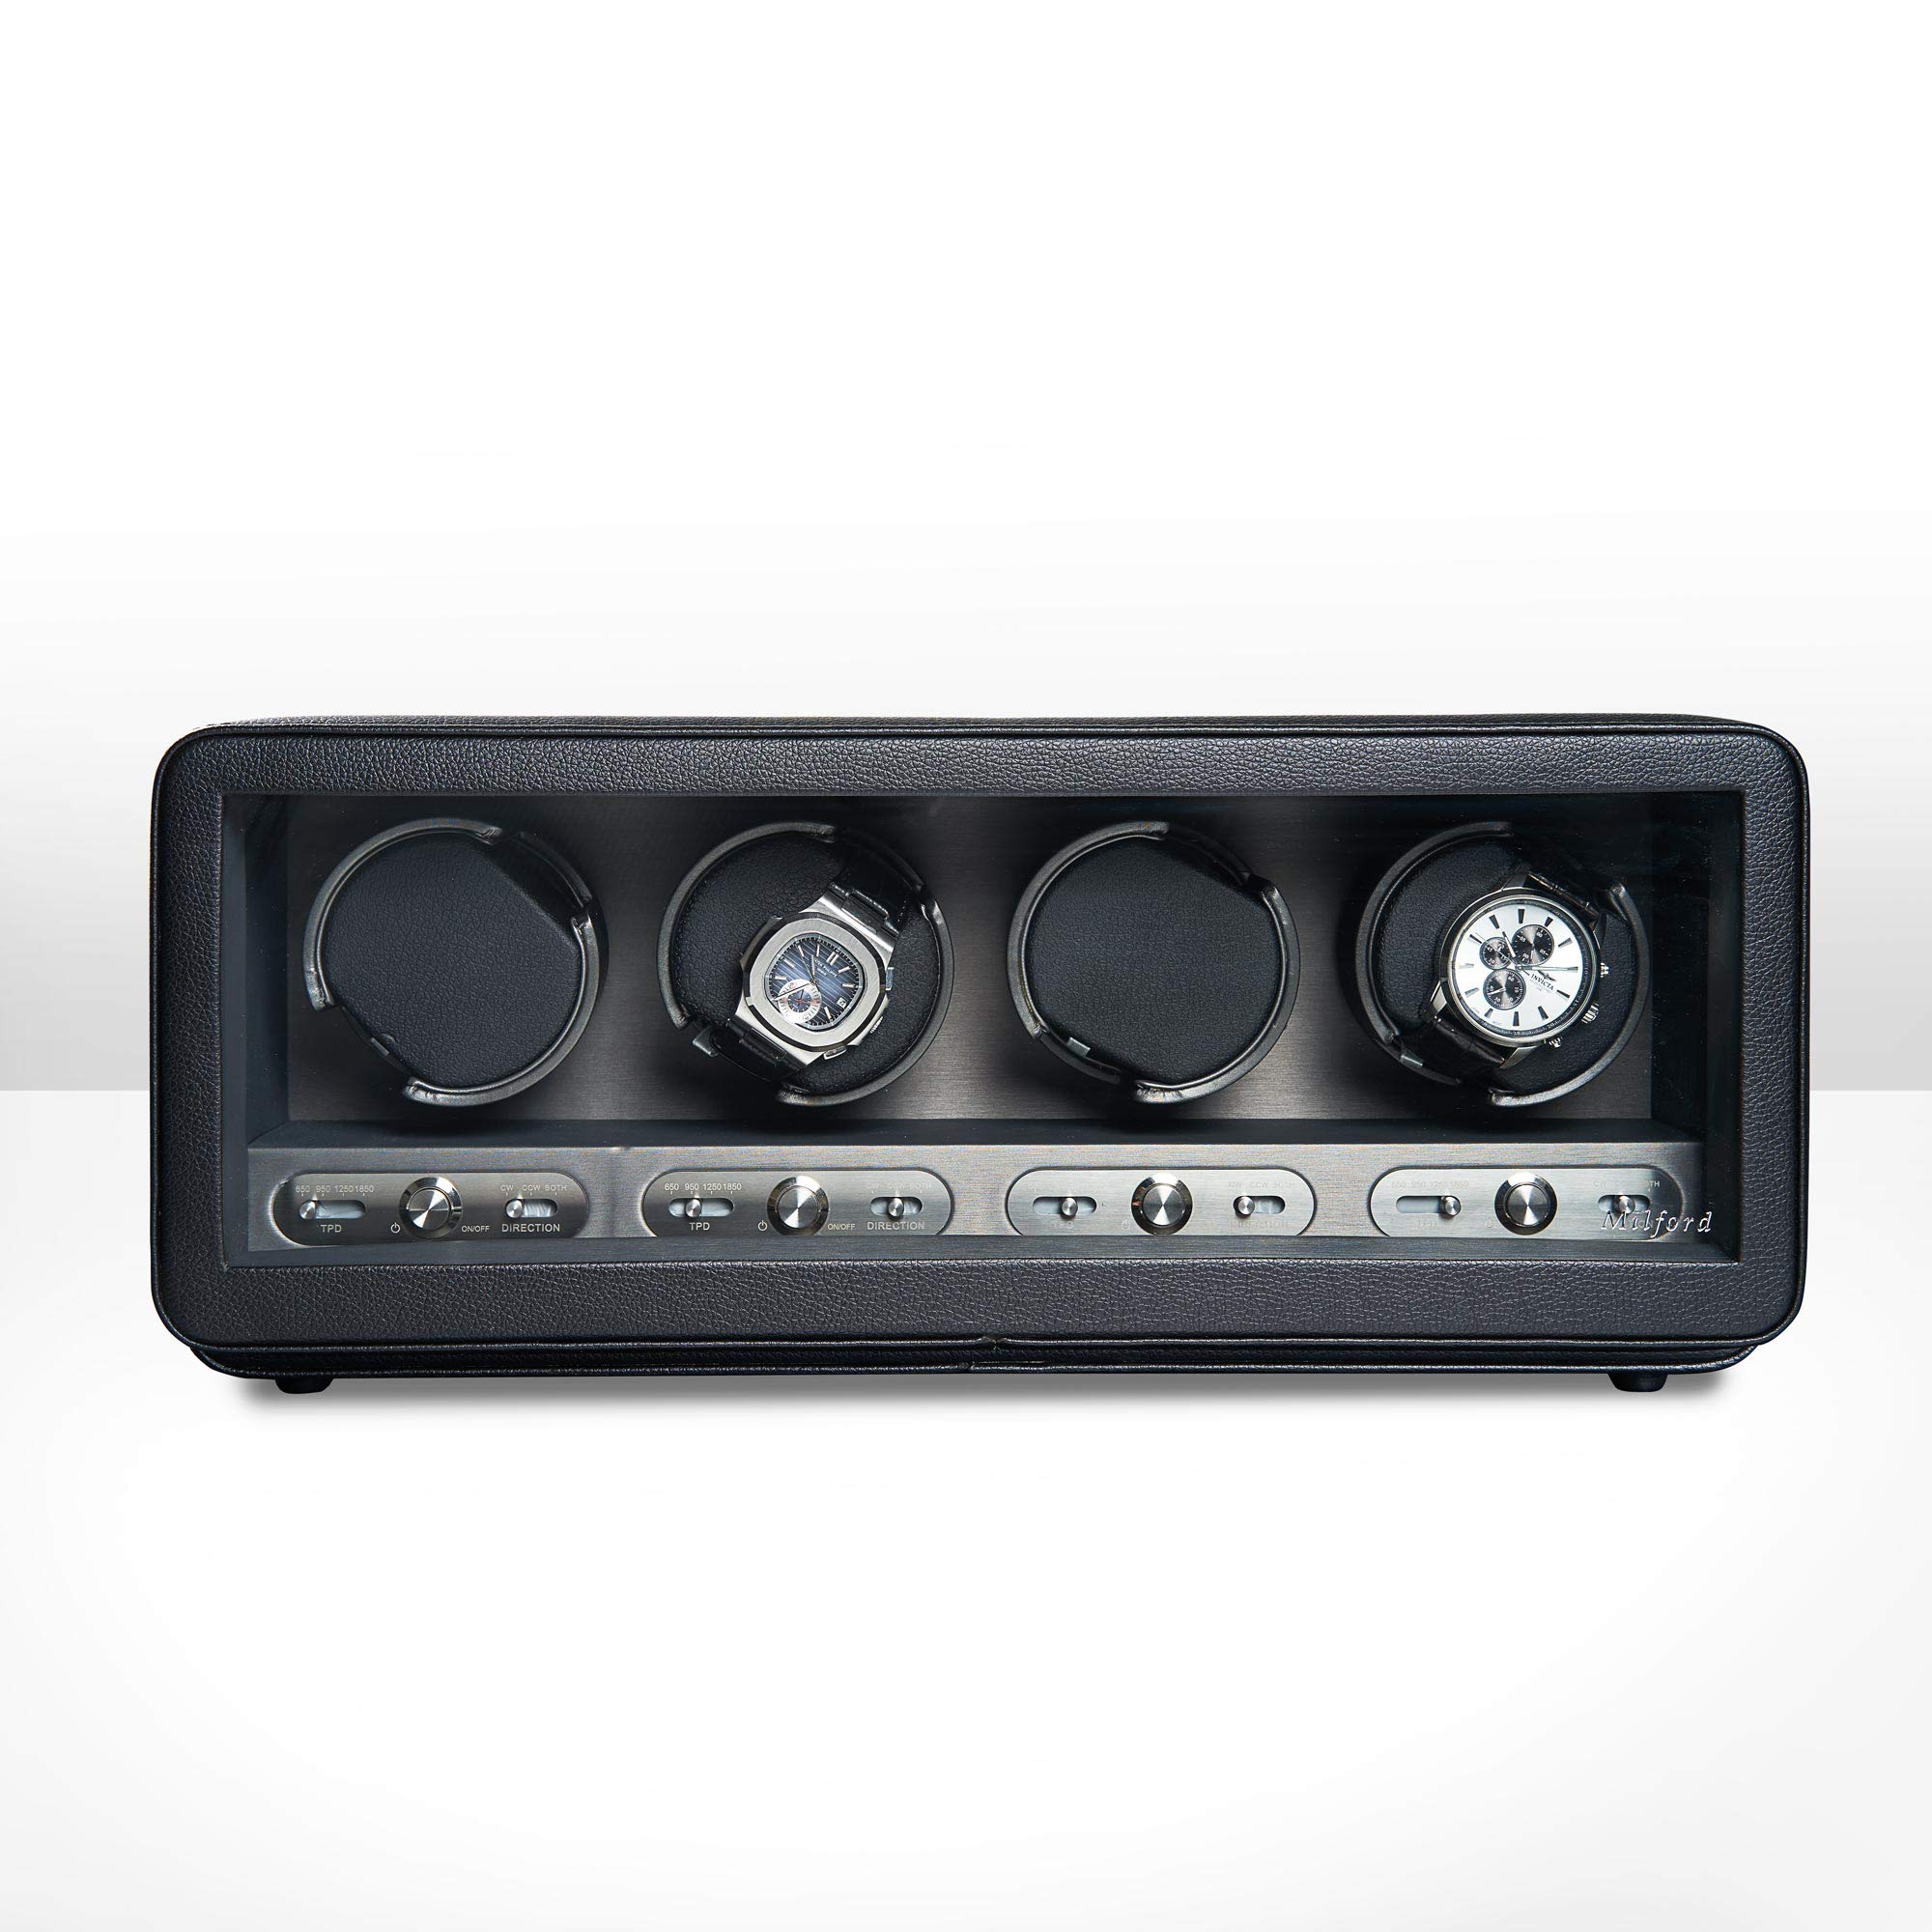 Milford Classic 4 Watch Winder for Automatic Watch/Adjustable TPD and Rotation Direction/Easy Set Up with Analog Controls/Battery or DC Power/Suitable for Safety Box/Luxurious Interior Lining